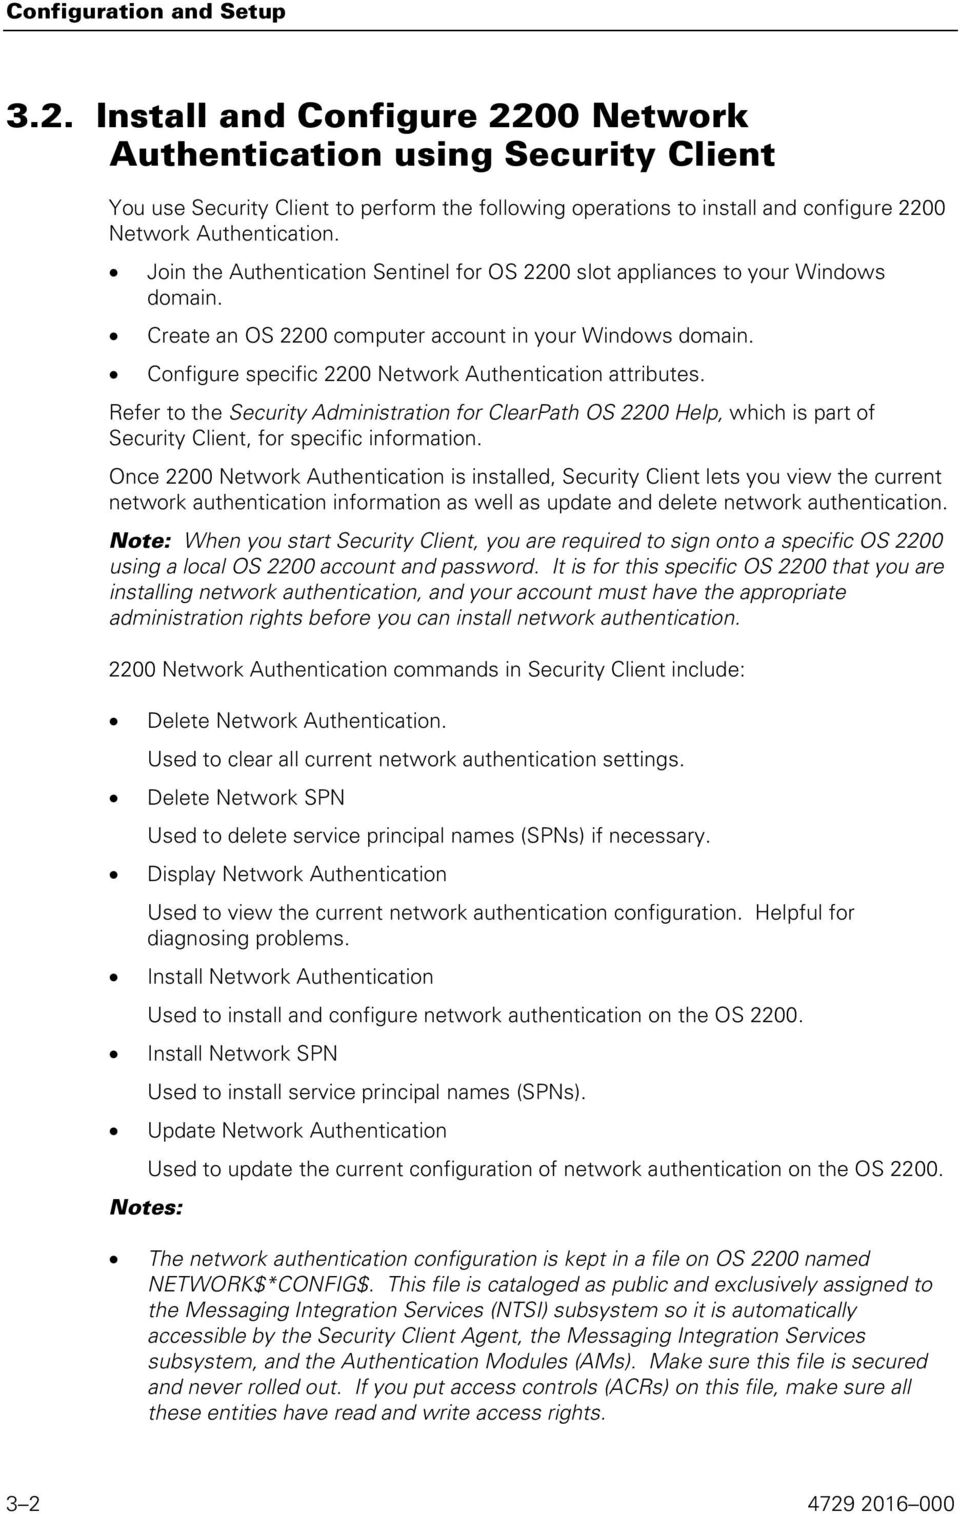 Join the Authentication Sentinel for OS 2200 slot appliances to your Windows domain. Create an OS 2200 computer account in your Windows domain.